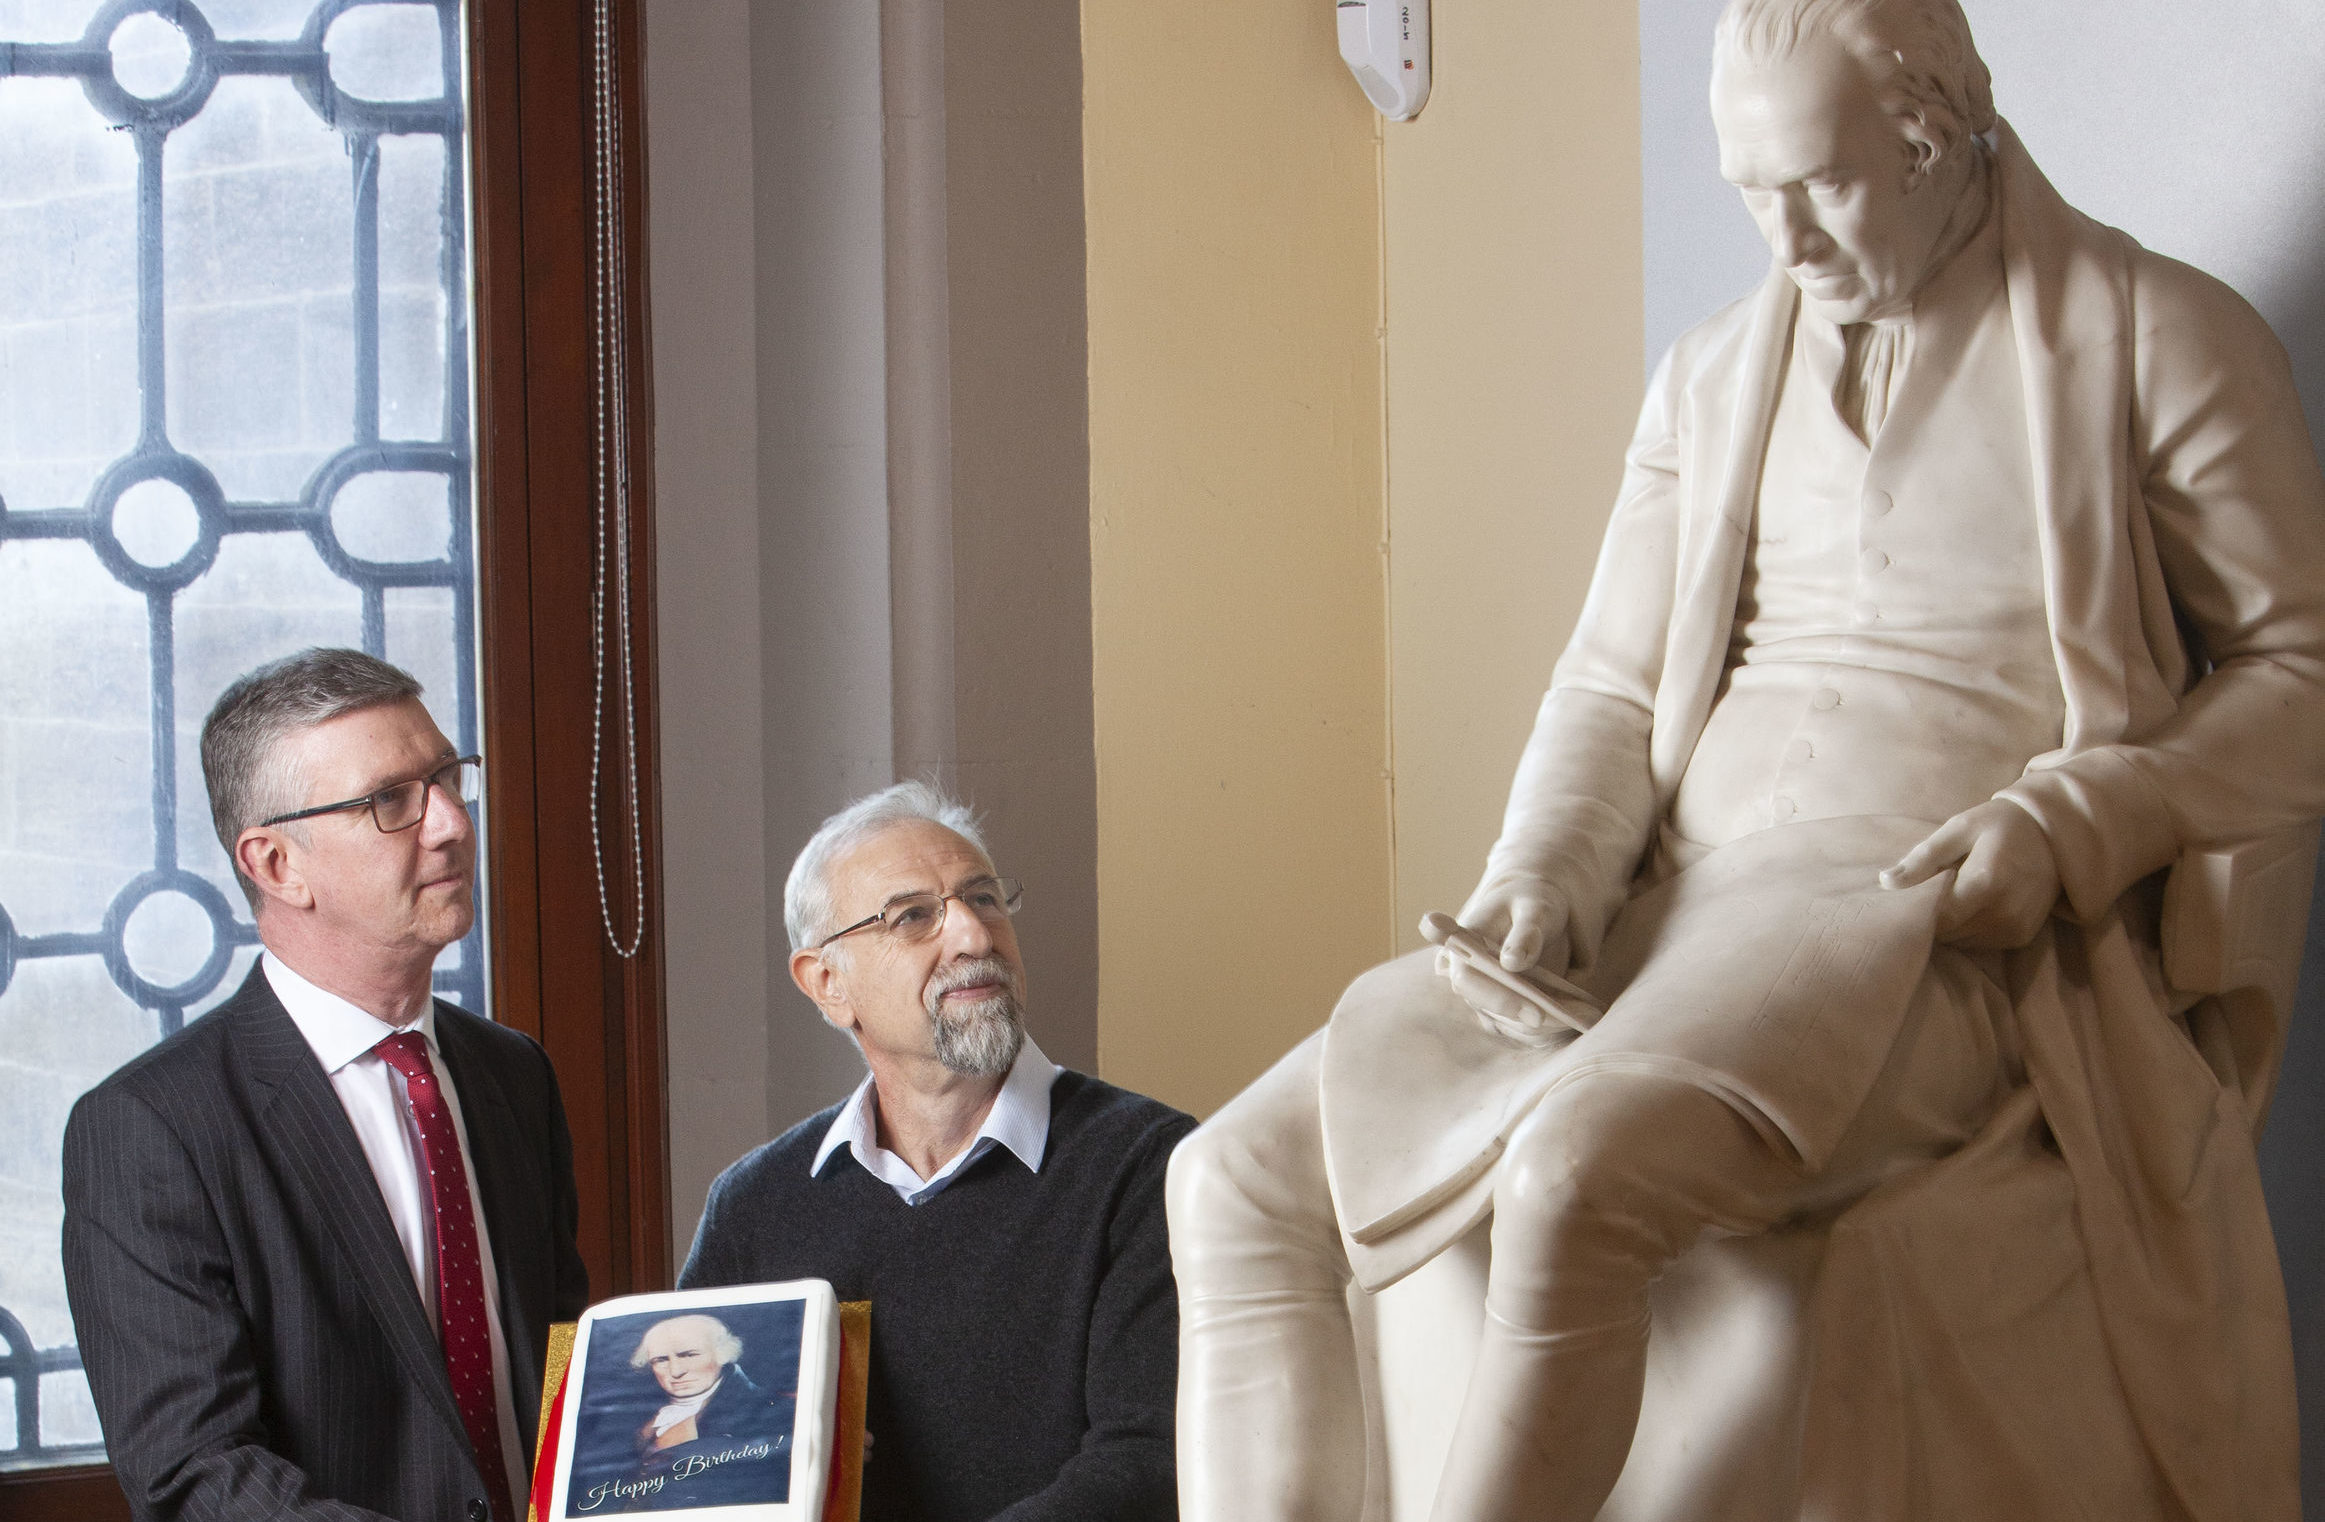 Professor Colin McInnes (left) and Professor Asen Asenov next to a statue of James Watt (University of Glasgow/PA Wire)